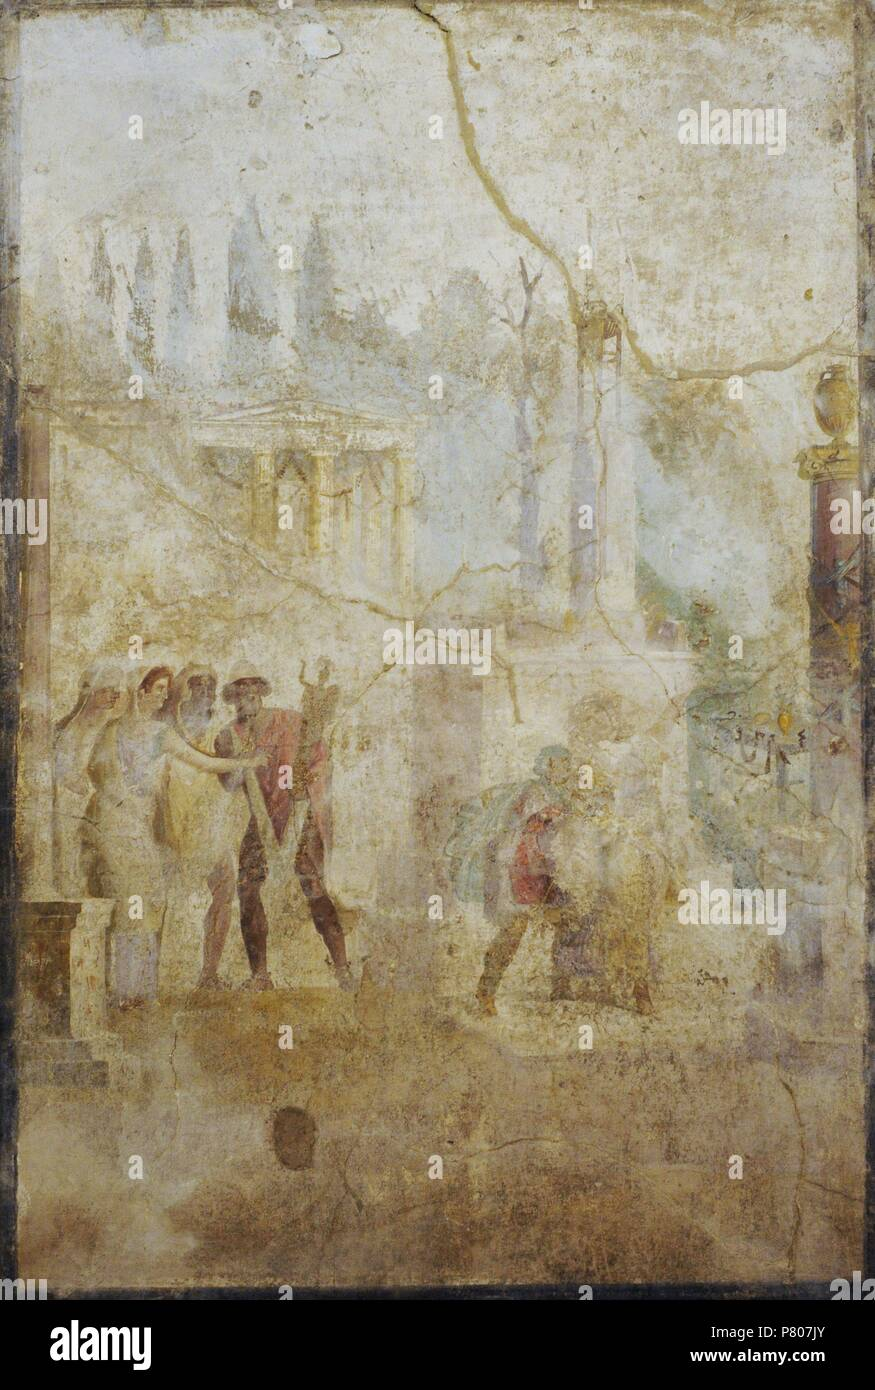 ce10651ca76 Roman fresco depicting Ulysses carrying the Palladium (statue of Athena)  that he has stolen from the temple. 1st century AD. Triclinium.